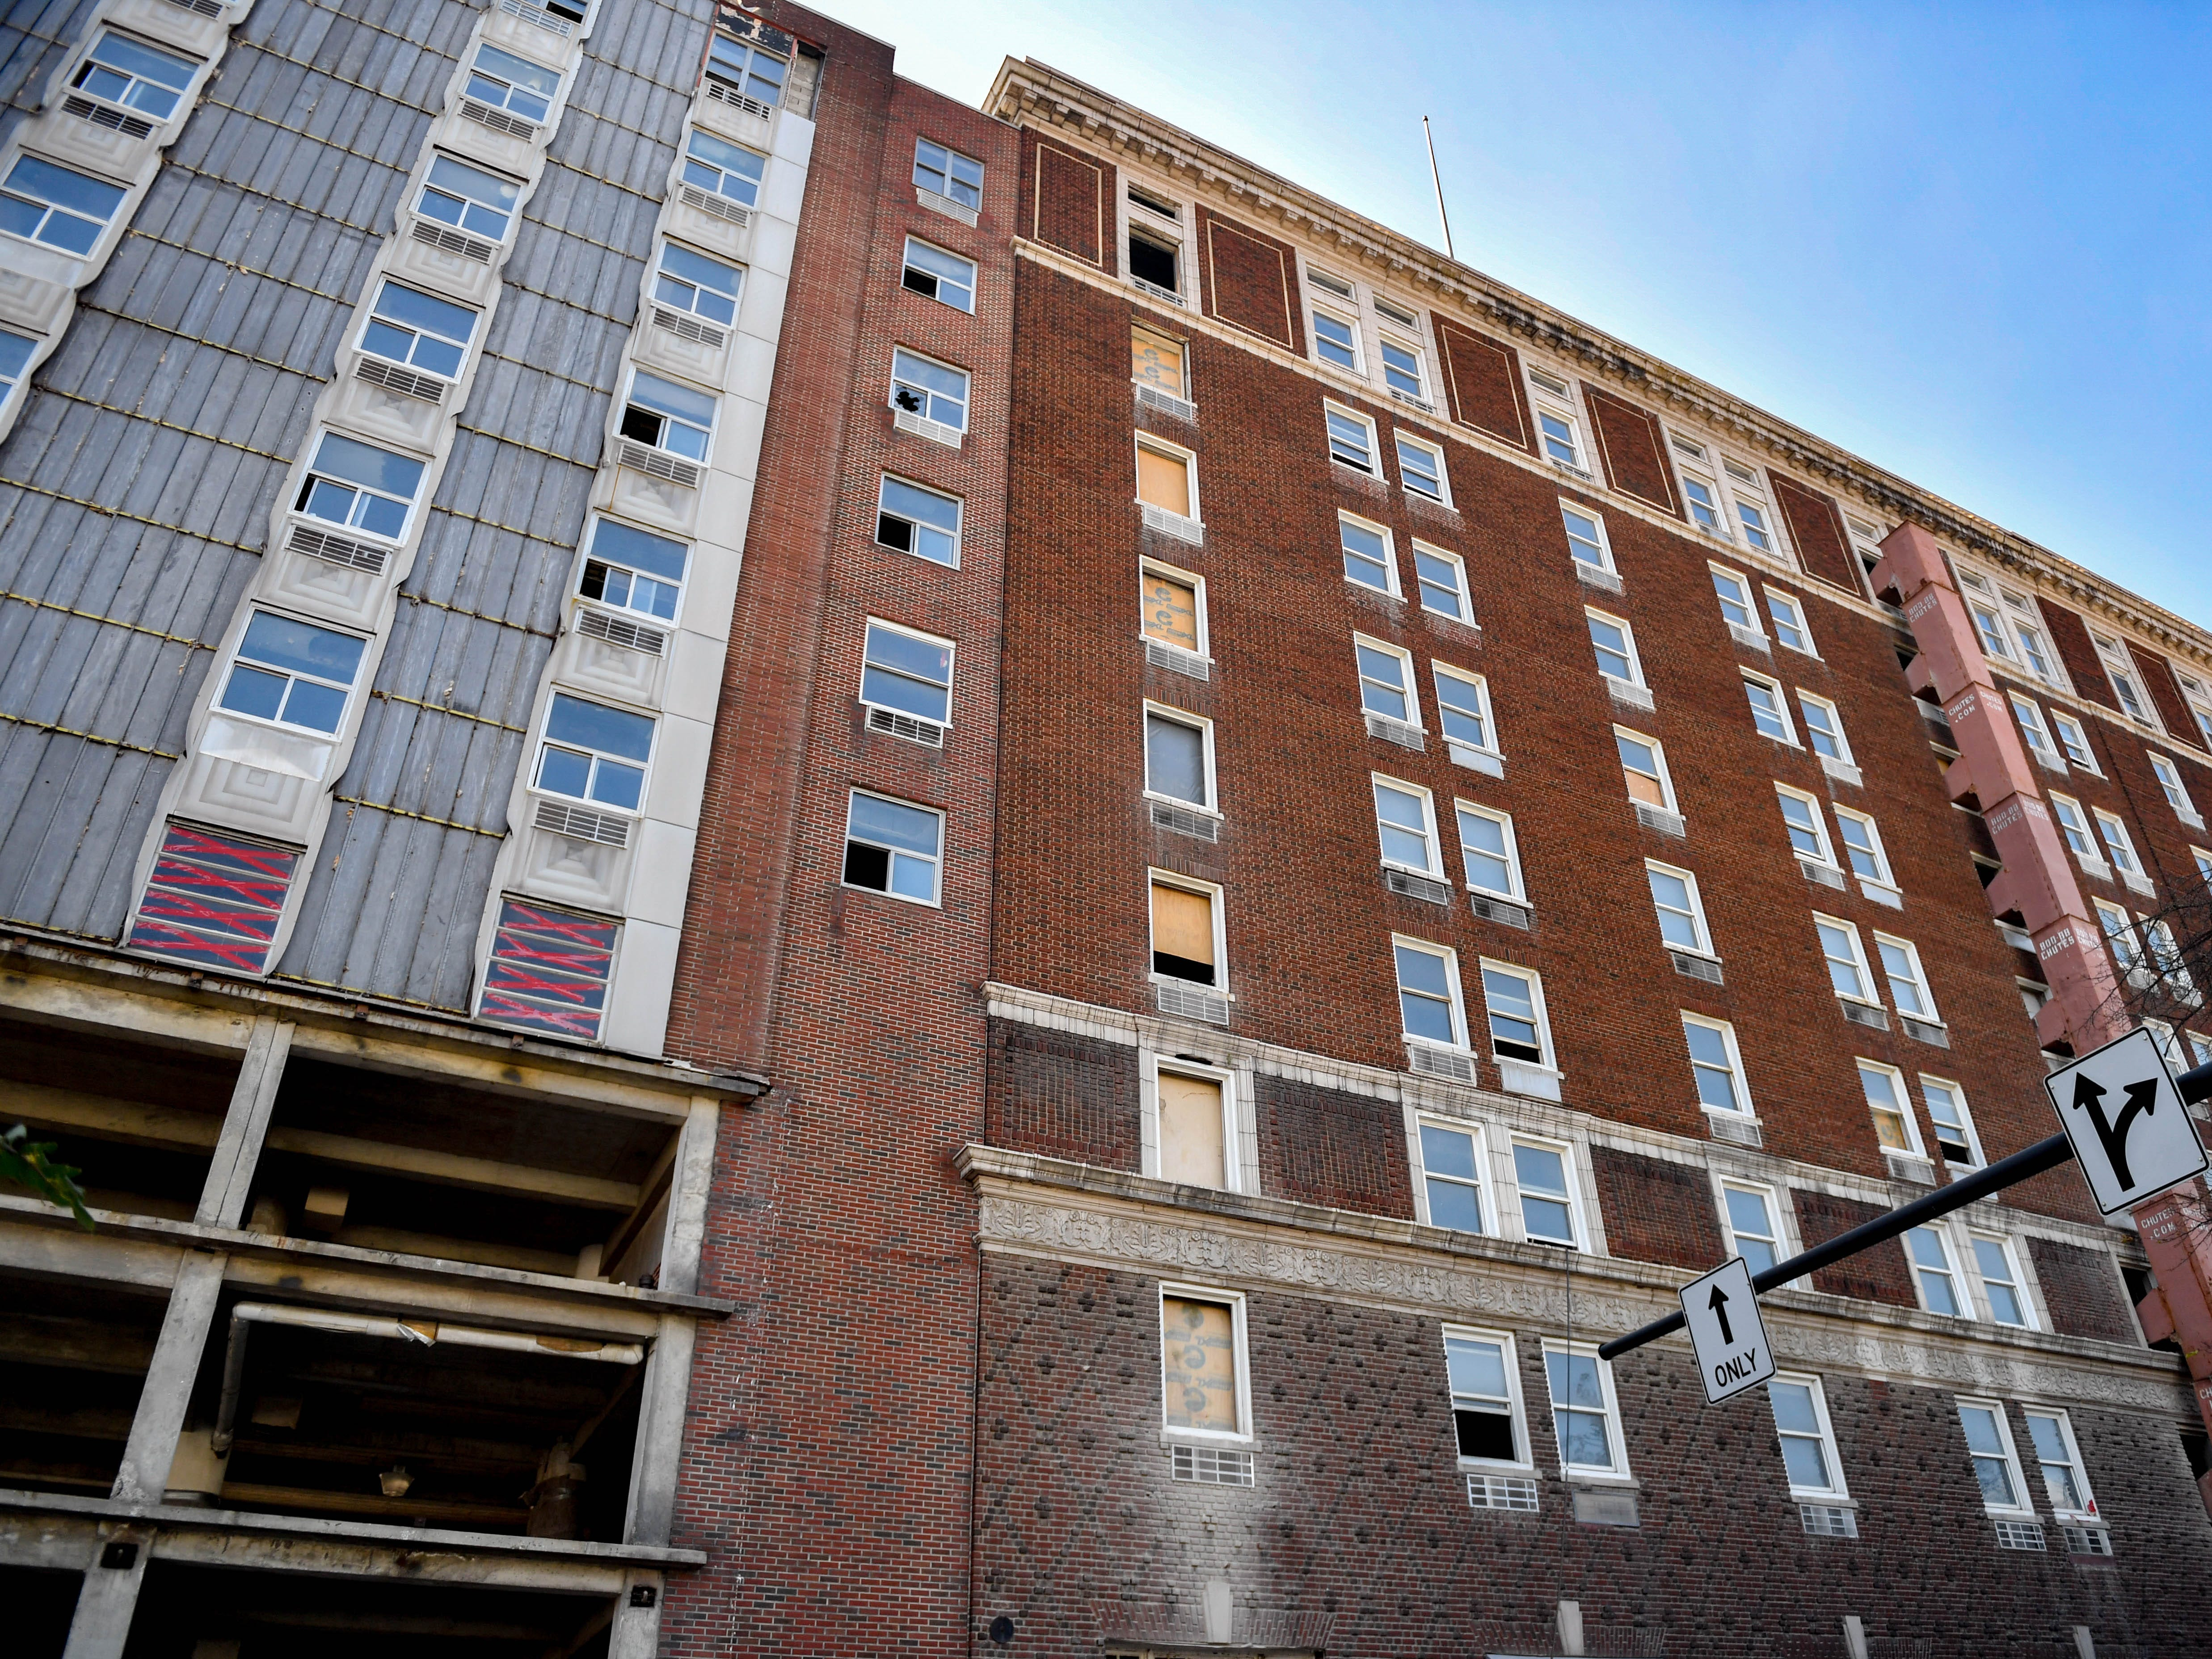 From the street it's easy to forget that the Yorktowne Hotel is going through major renovations on October 4, 2018.